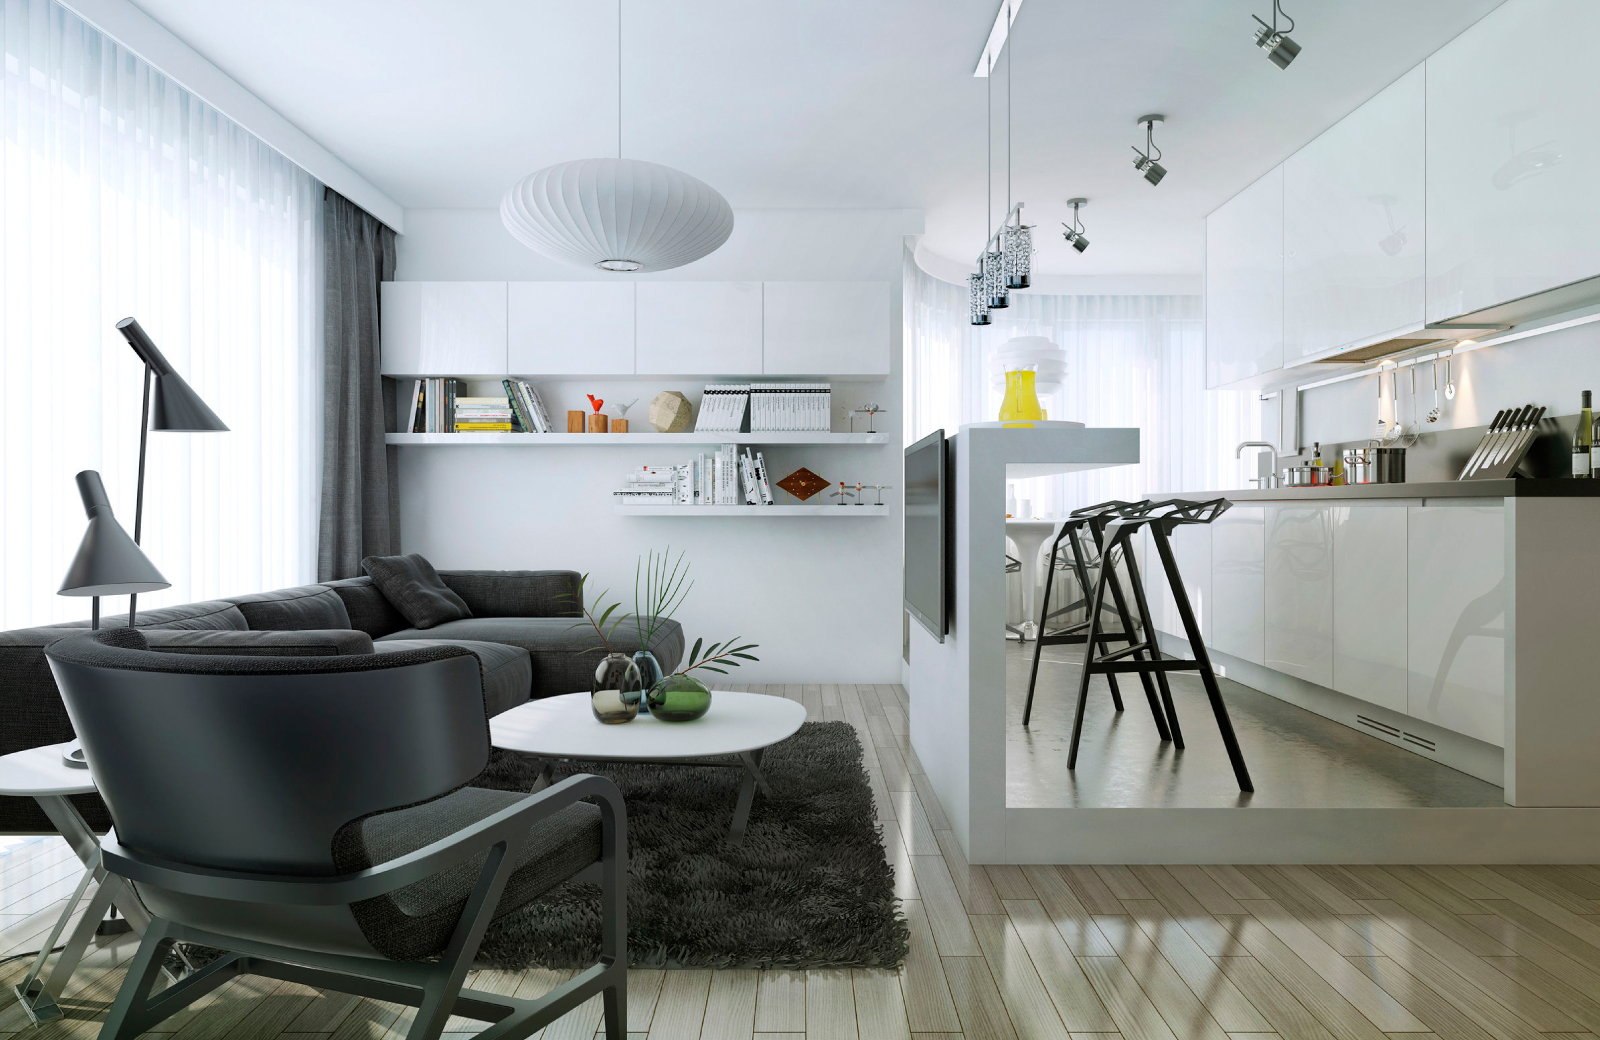 Inspiring Decorating Ideas for a Studio Apartment